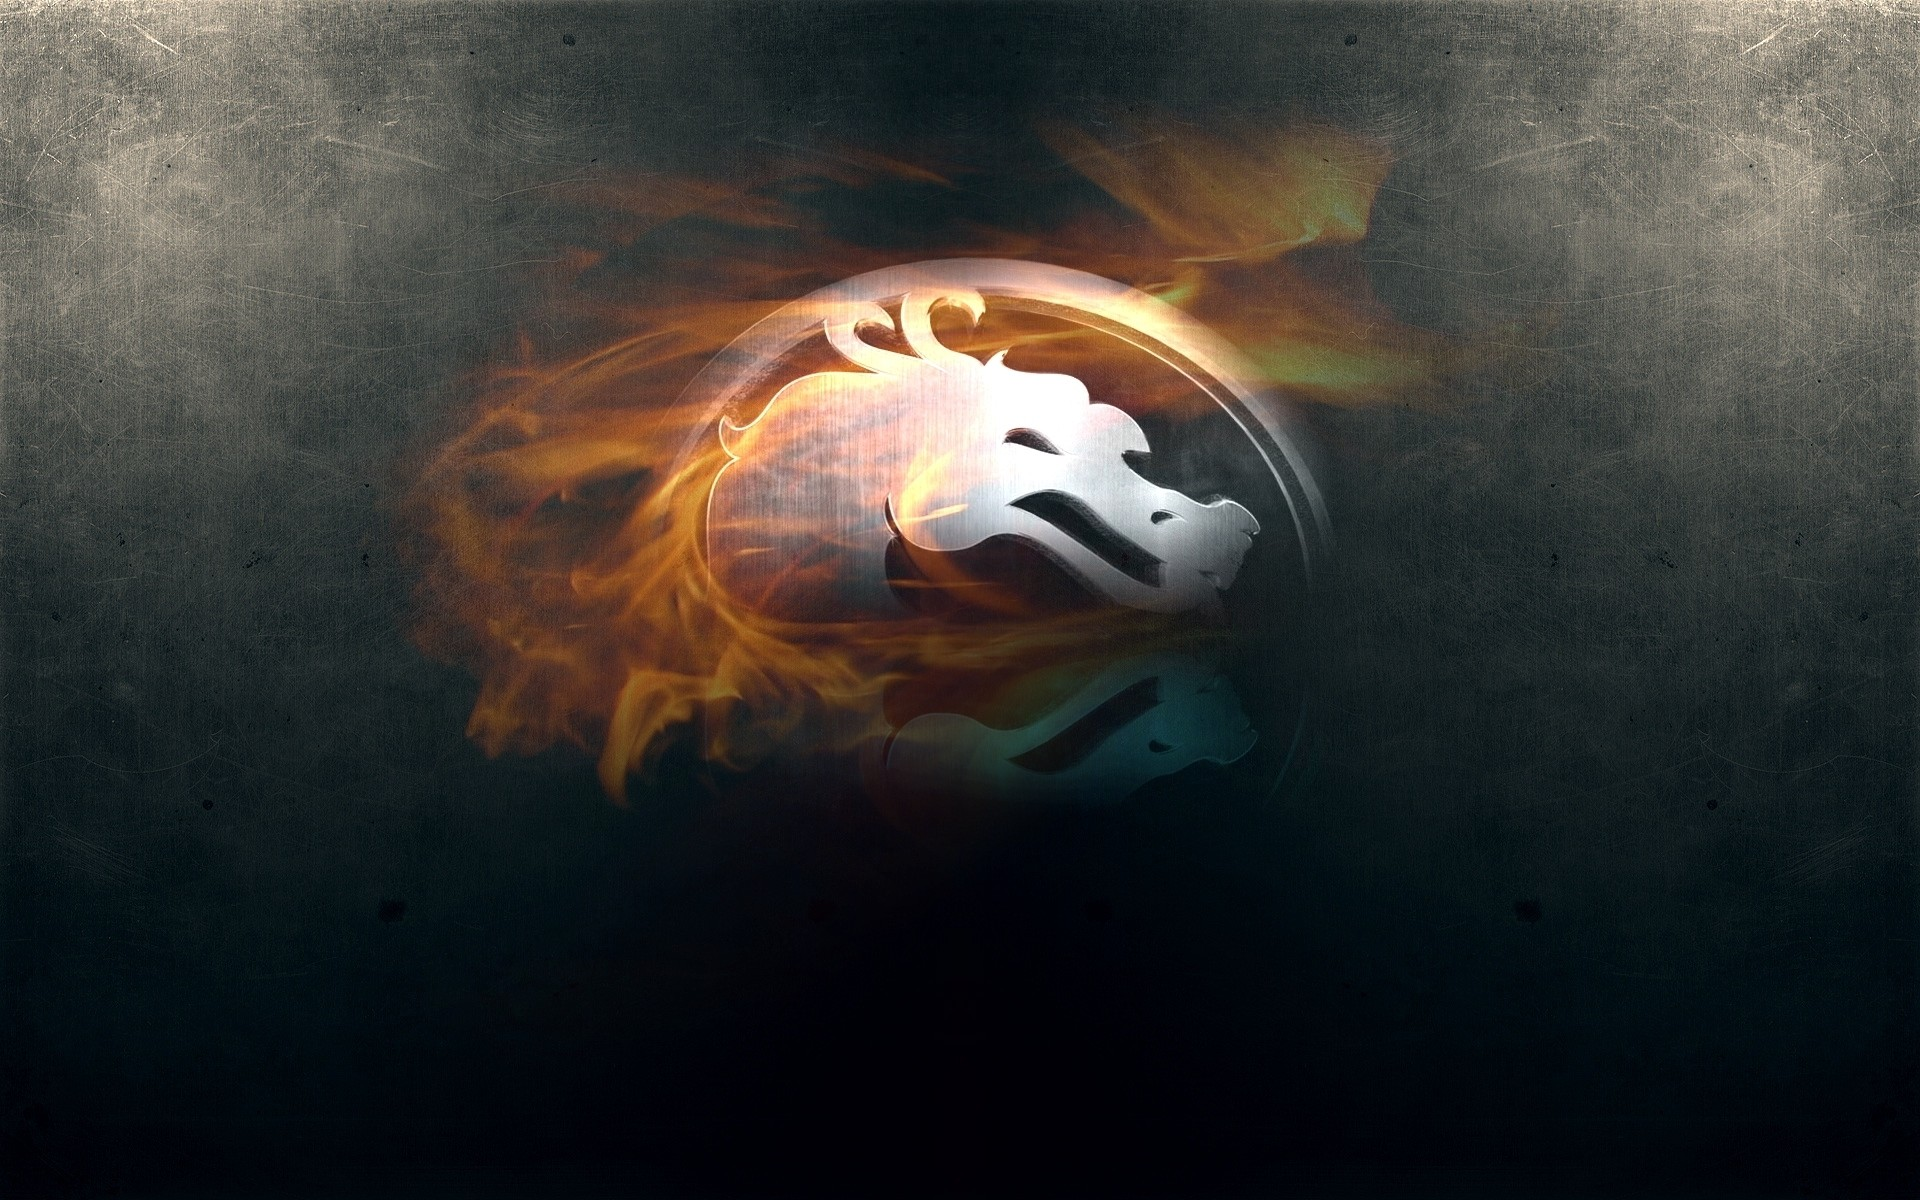 1920x1200 Mortal Kombat Logo HD Wallpaper 8 - 1920 X 1200